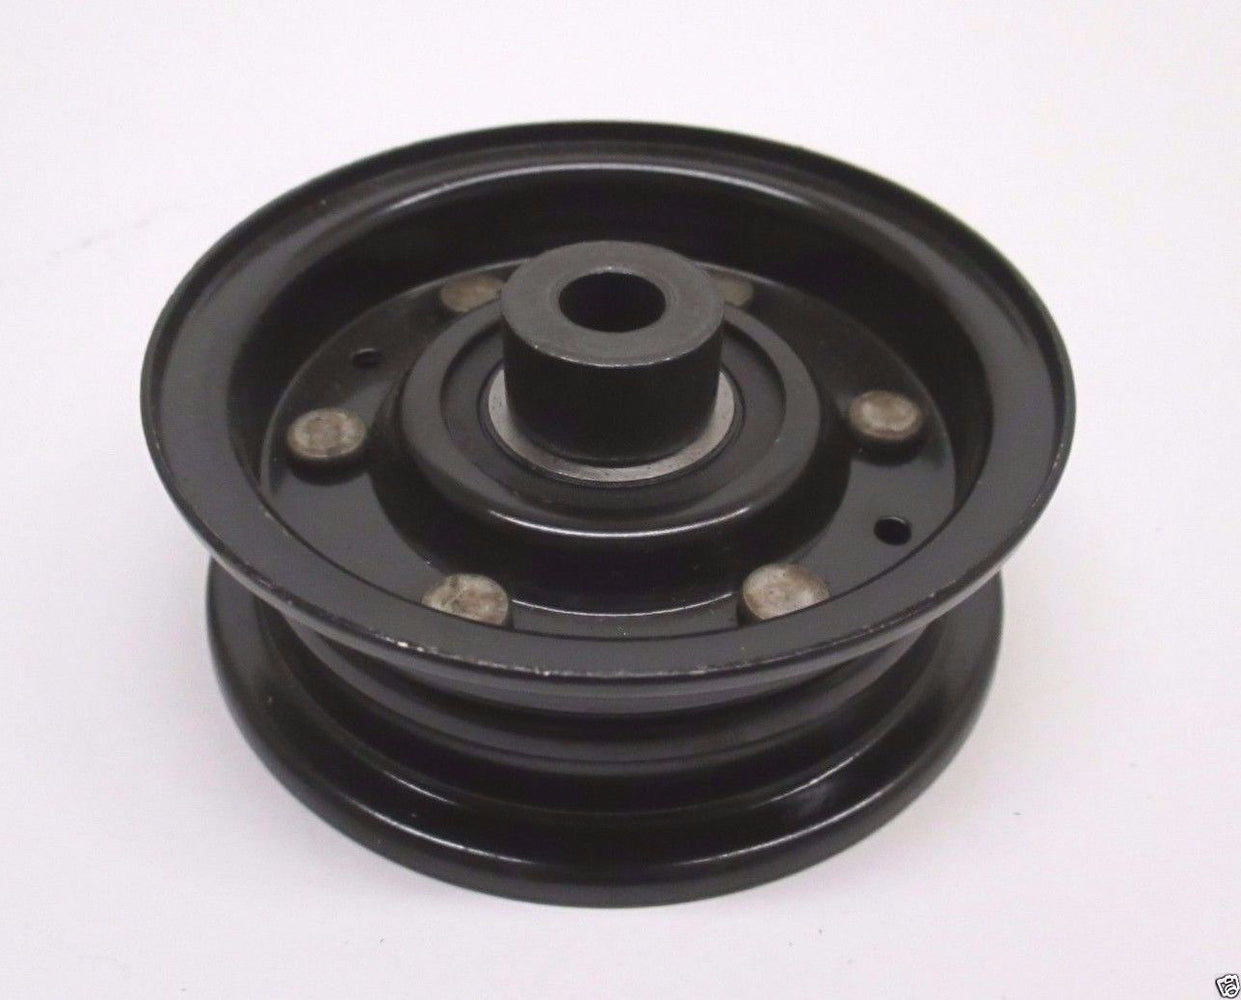 Oregon 78-031 Flat Idler Pulley For 38010-2A PAL0368A PT8649 76520 Bobcat Bunton